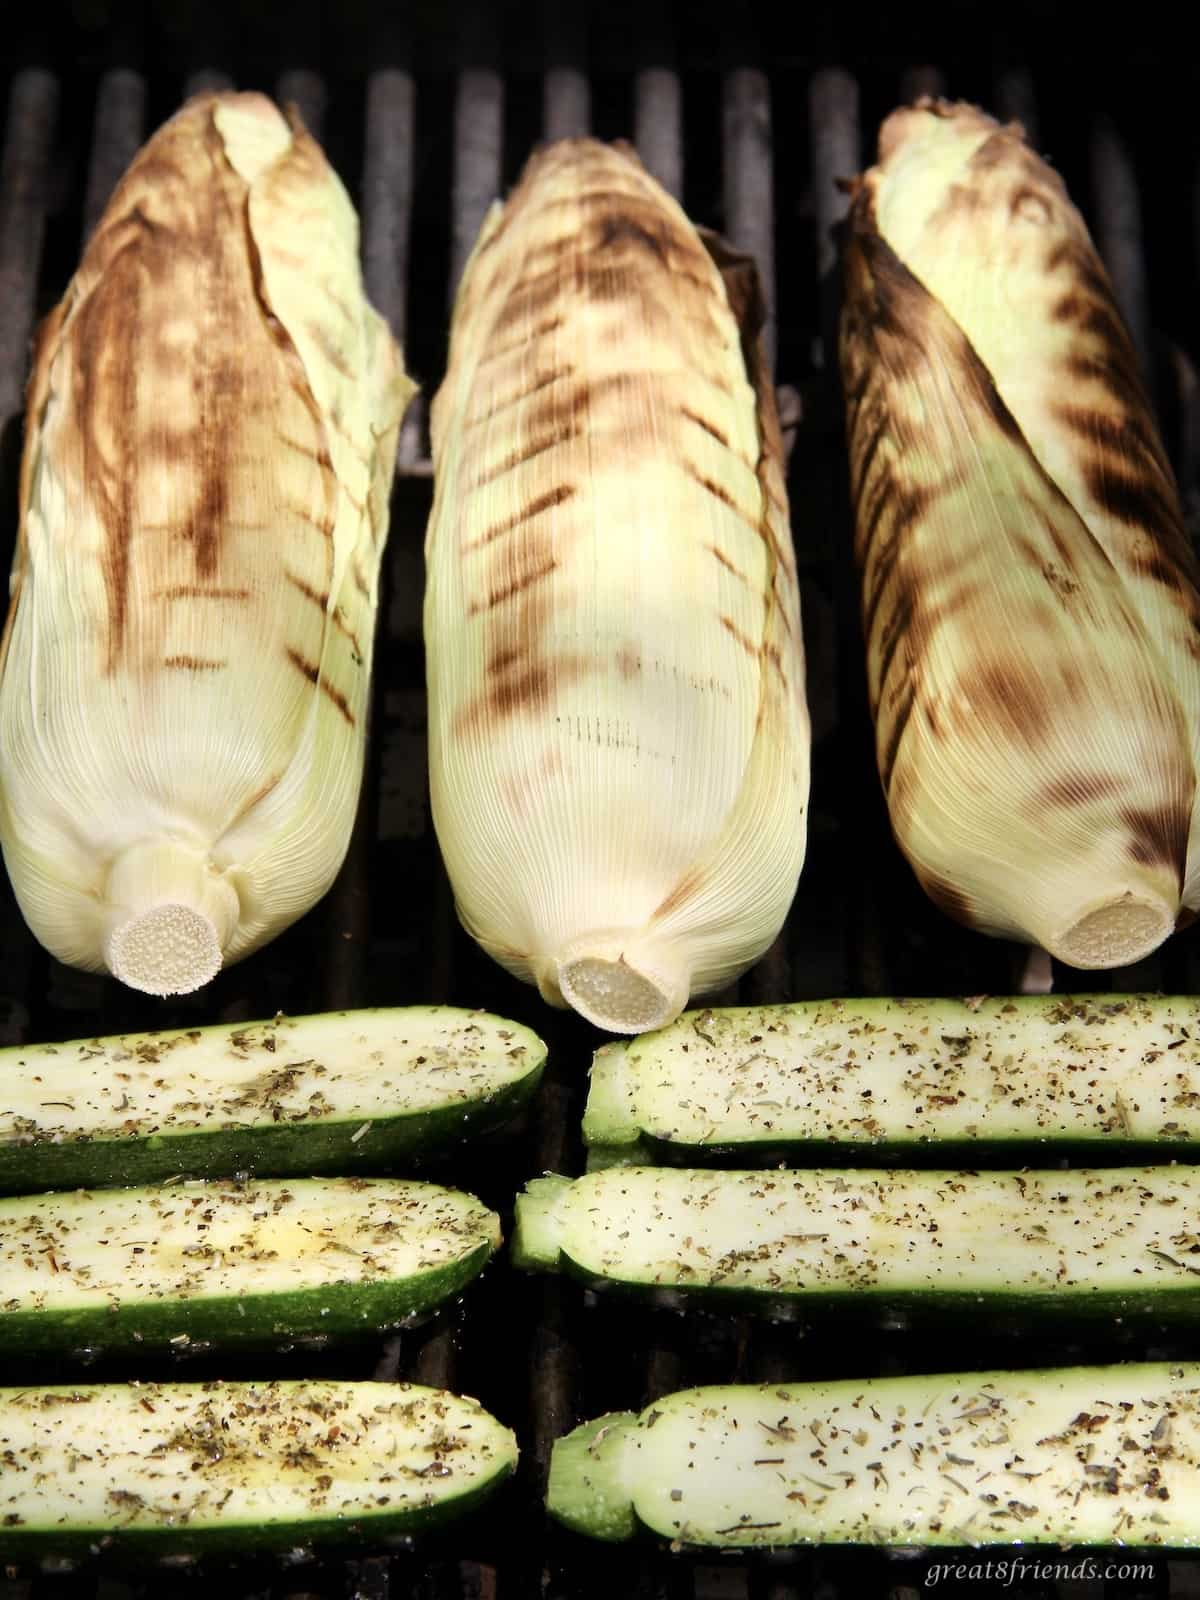 Corn in the husk and seasoned cut zucchini grilling on the backyard grill.